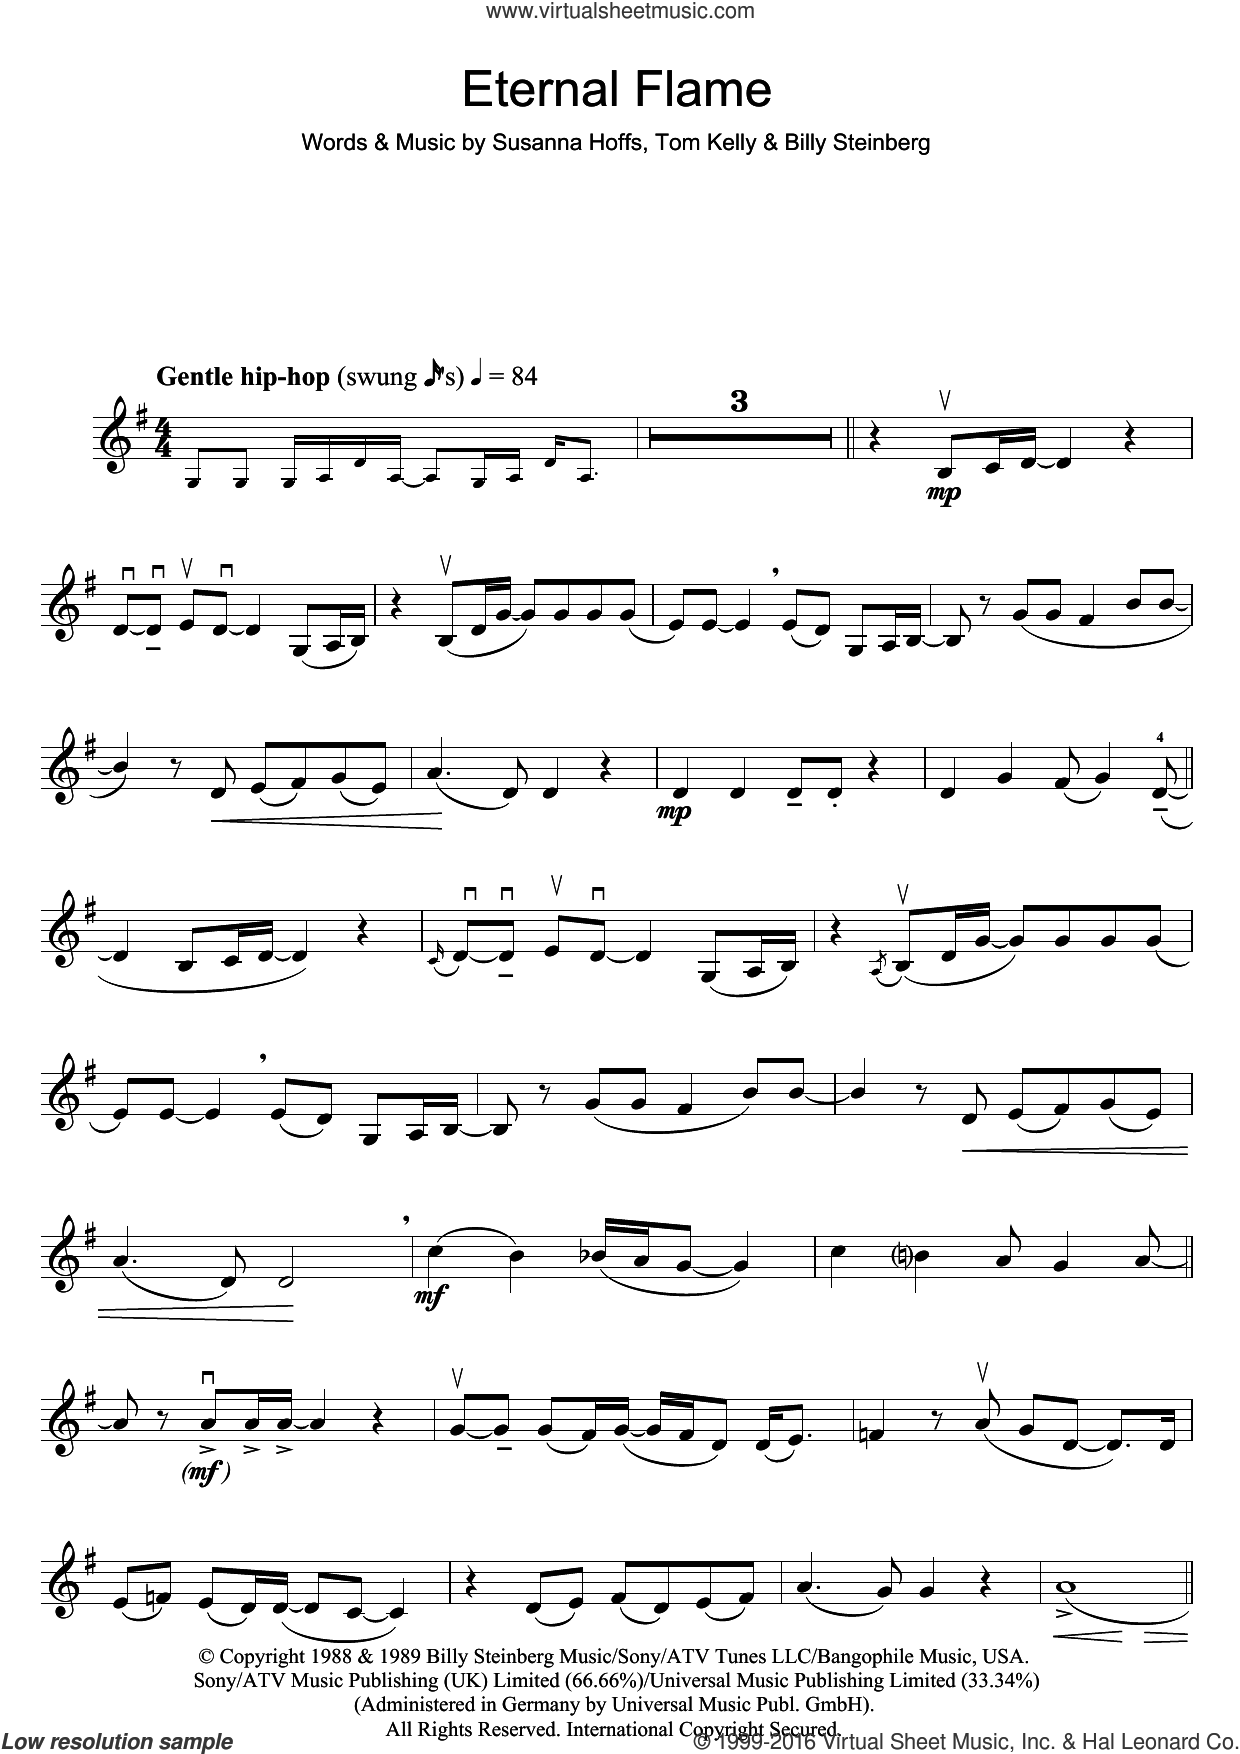 Eternal Flame sheet music for violin solo by Atomic Kitten, Billy Steinberg, Susanna Hoffs and Tom Kelly, intermediate skill level